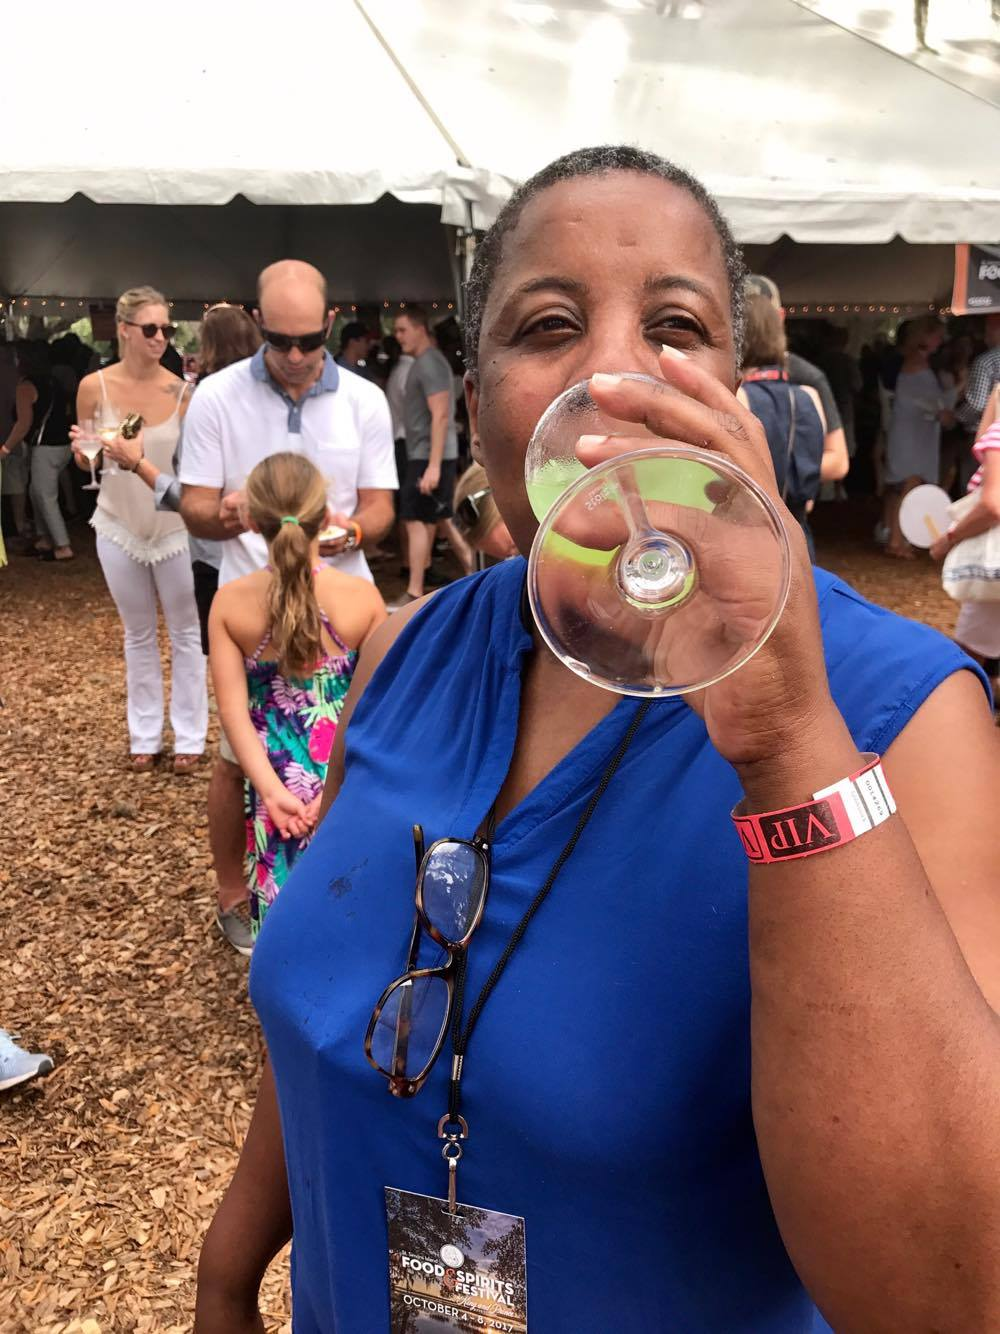 Tasting Under the Oaks - MJ sampling some drink - St Simons Food Spirits Festival